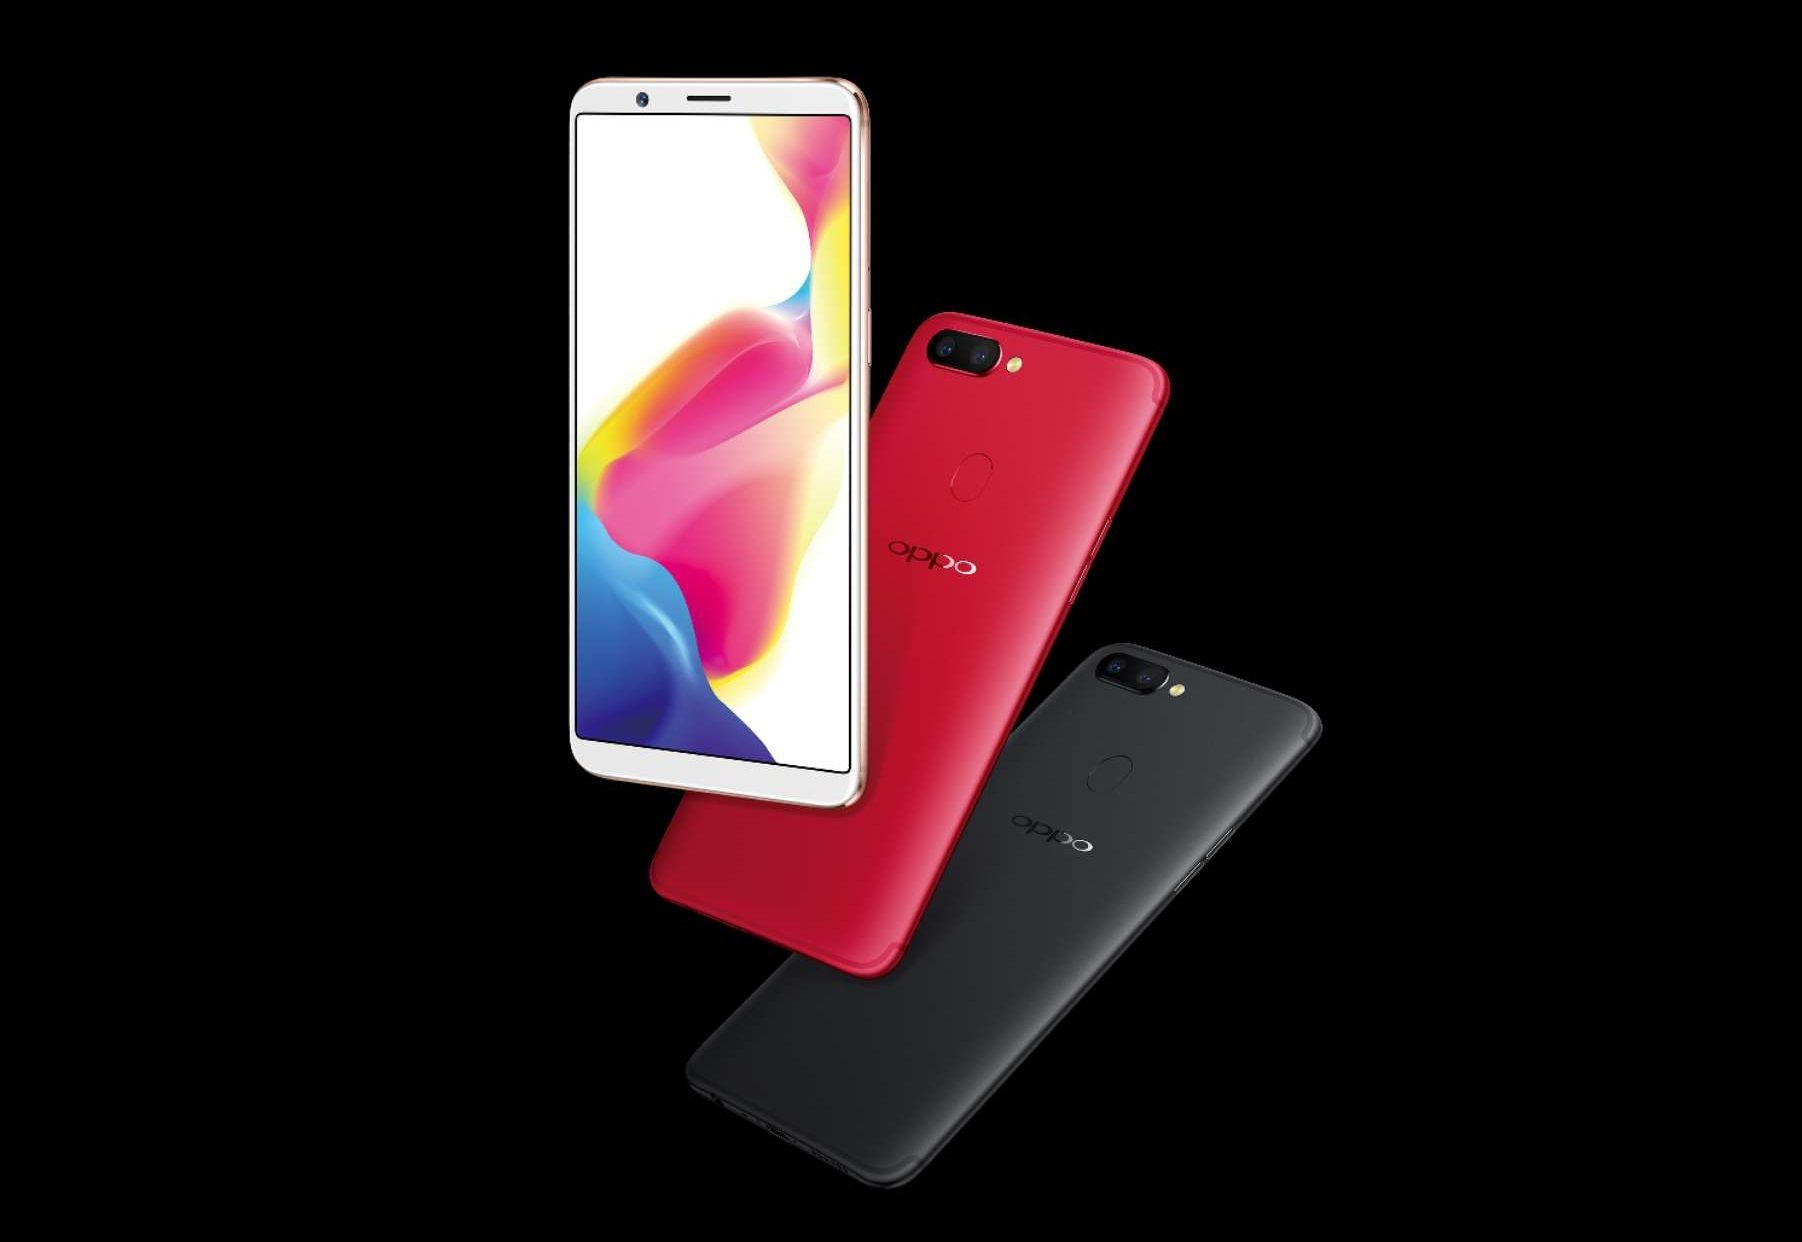 OPPO R11s and R11s Plus revealed with 18 9 displays 16 MP and 20 MP dual cameras